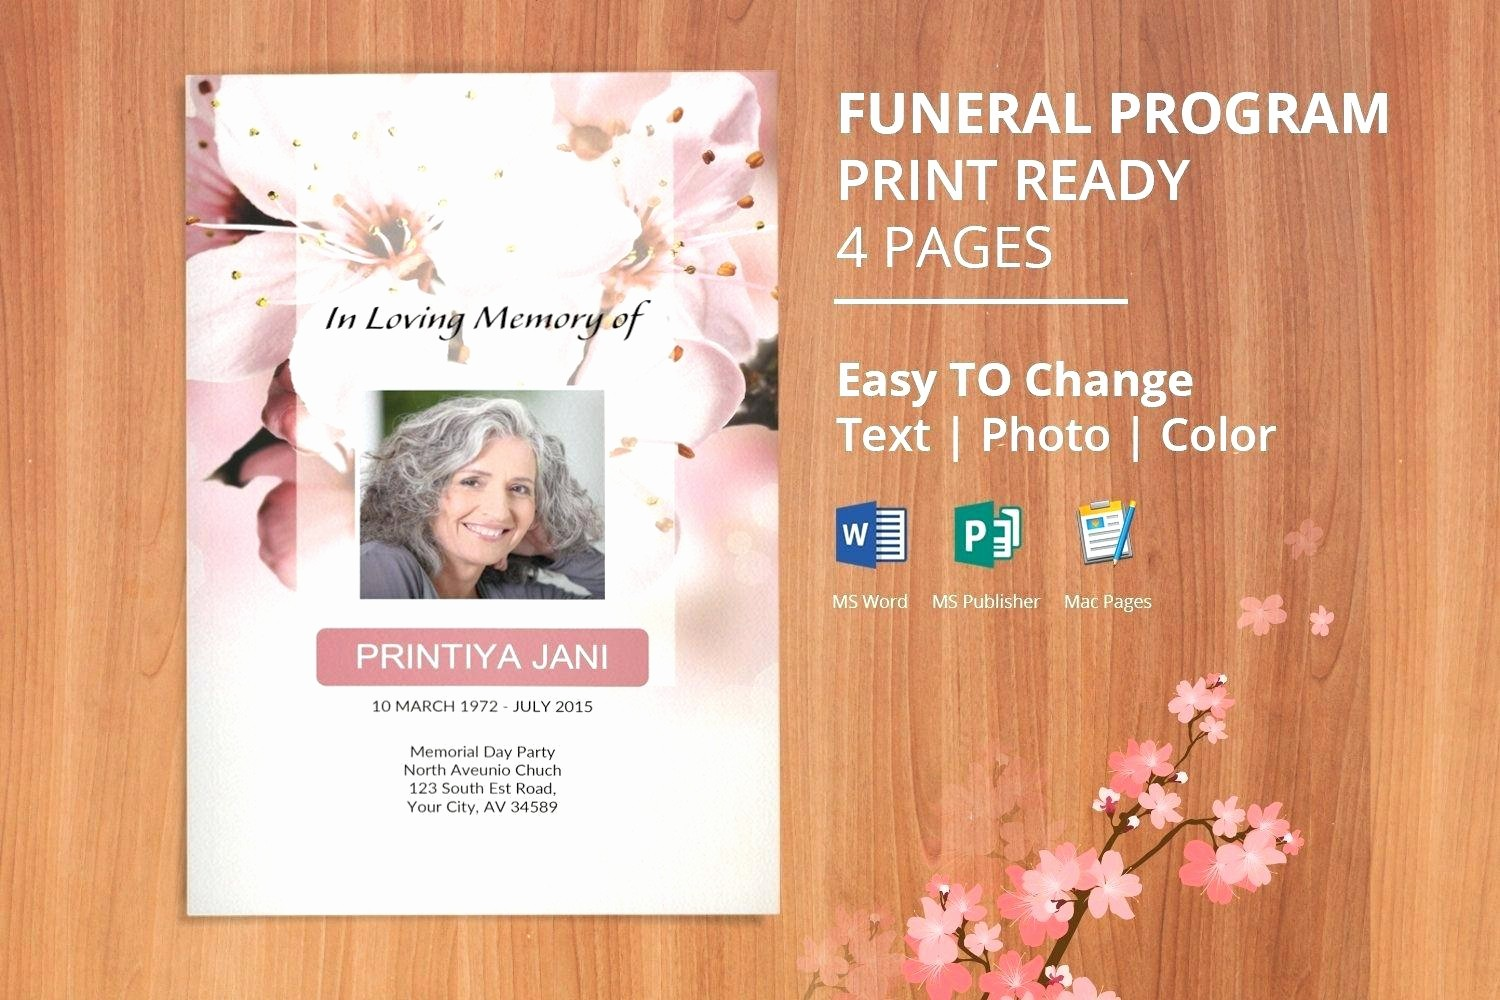 Funeral Program Template Word 2010 Lovely Funeral Programs Template Microsoft Word